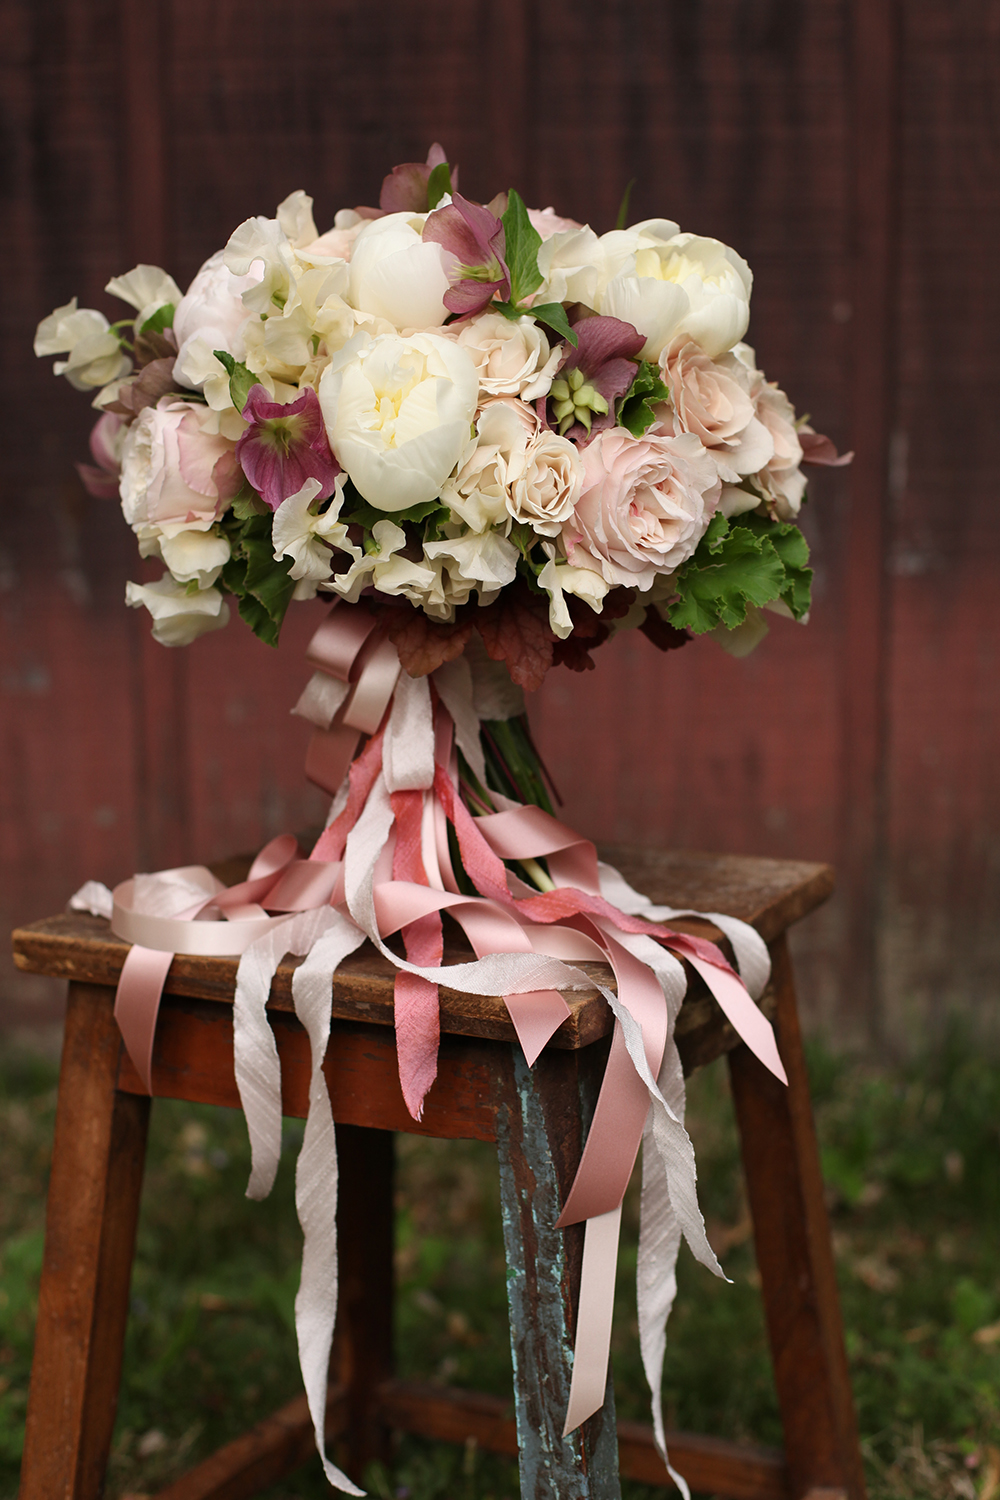 bridal bouquet by wedding florist Floral Verde LLC in Cincinnati, Ohio; with pink hellebores, Brillant Stars Bridal spray roses, Keira garden roses, White Majolica spray roses, Quicksand roses, ivory Japanese sweet pea, white peonies, Heuchera 'Vienna' and scented geranium, with cascading silk and satin ribbons in blush.